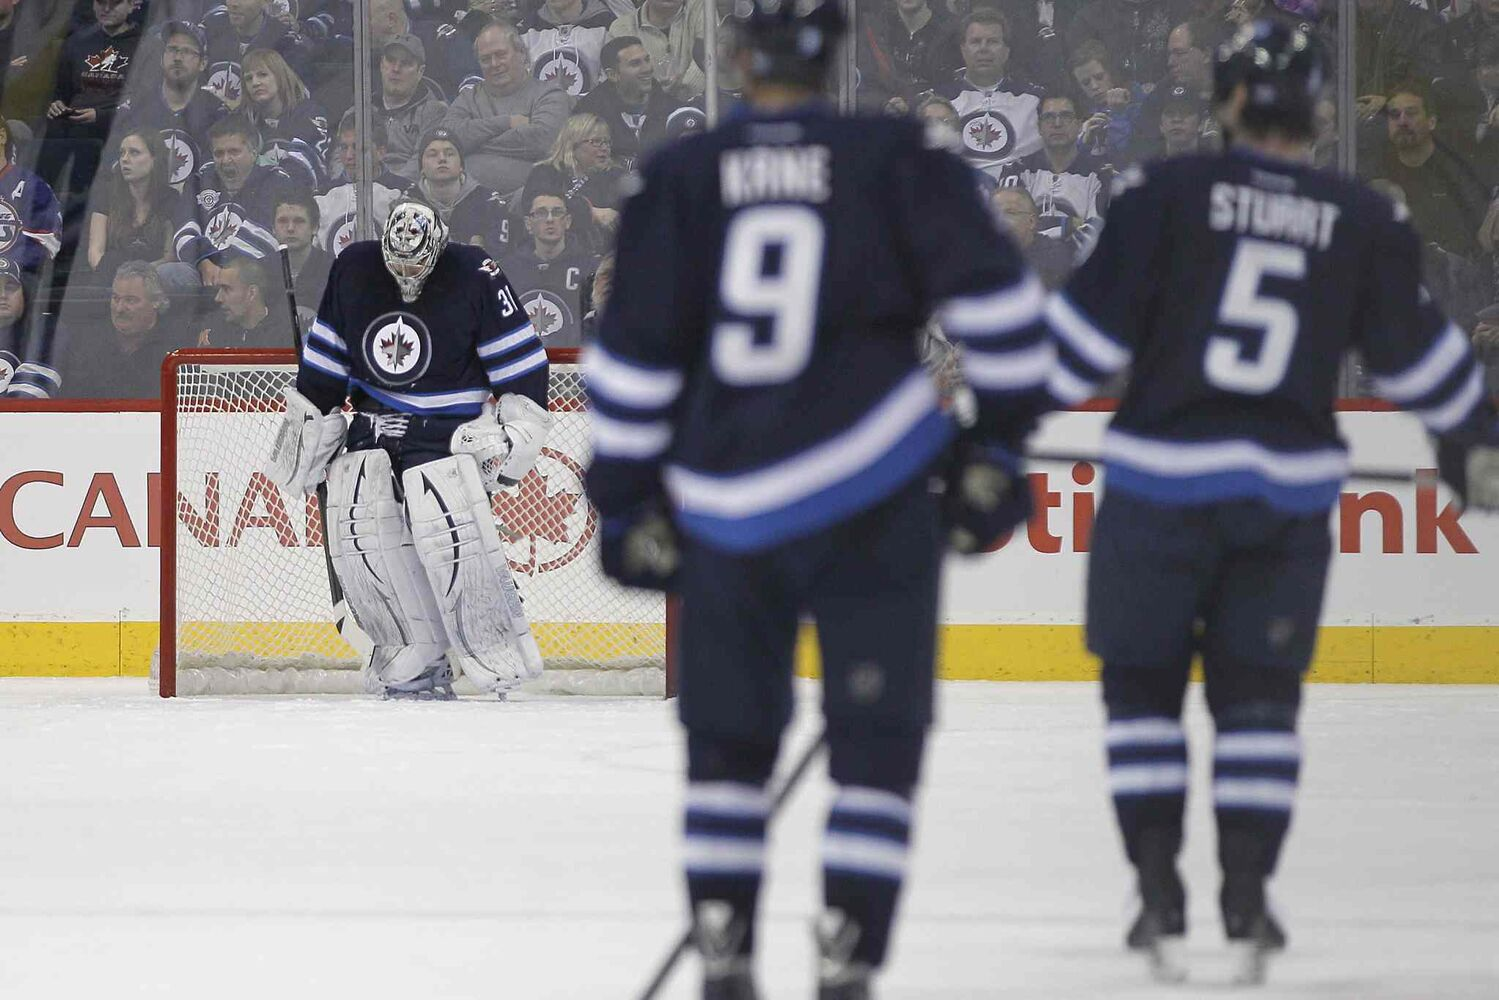 Winnipeg Jets' goaltender Ondrej Pavelec (31) hangs his head after being scored on by Tampa Bay Lightning's Ondrej Palat (18) during second period NHL action in Winnipeg on Tuesday. (John Woods / Winnipeg Free Press)